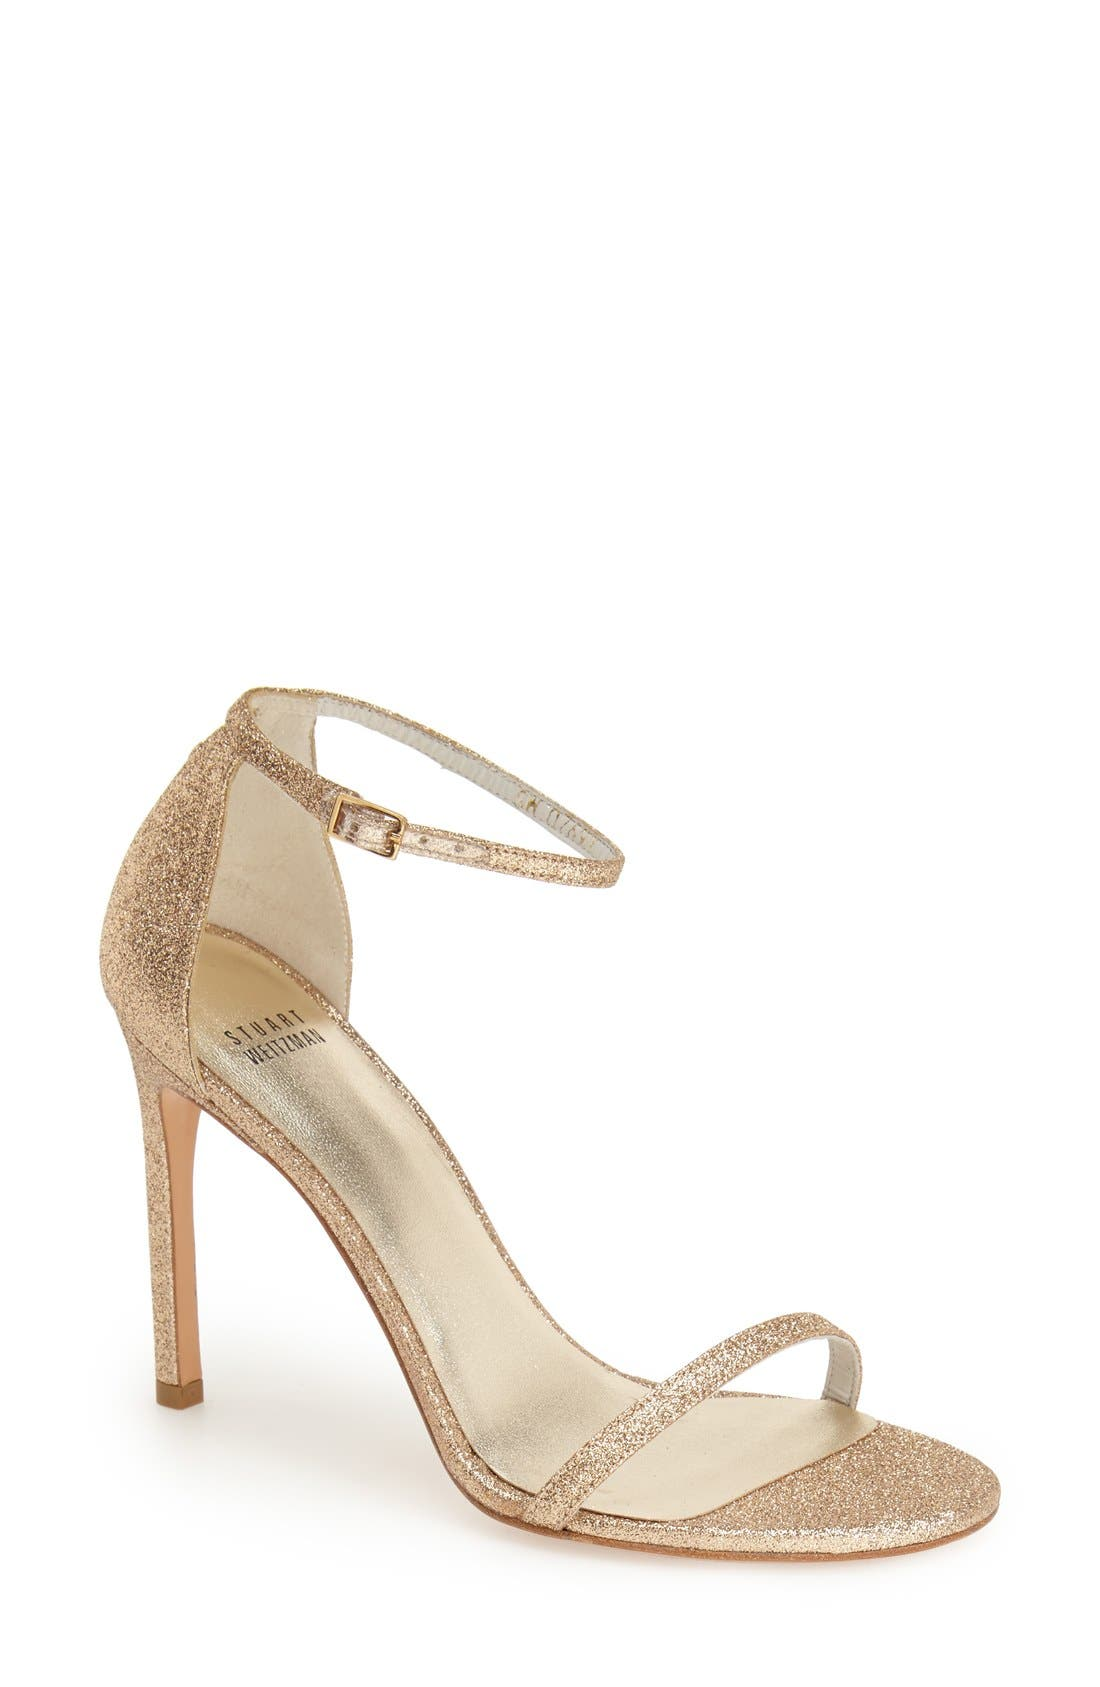 Nudistsong Ankle Strap Sandal,                             Main thumbnail 42, color,